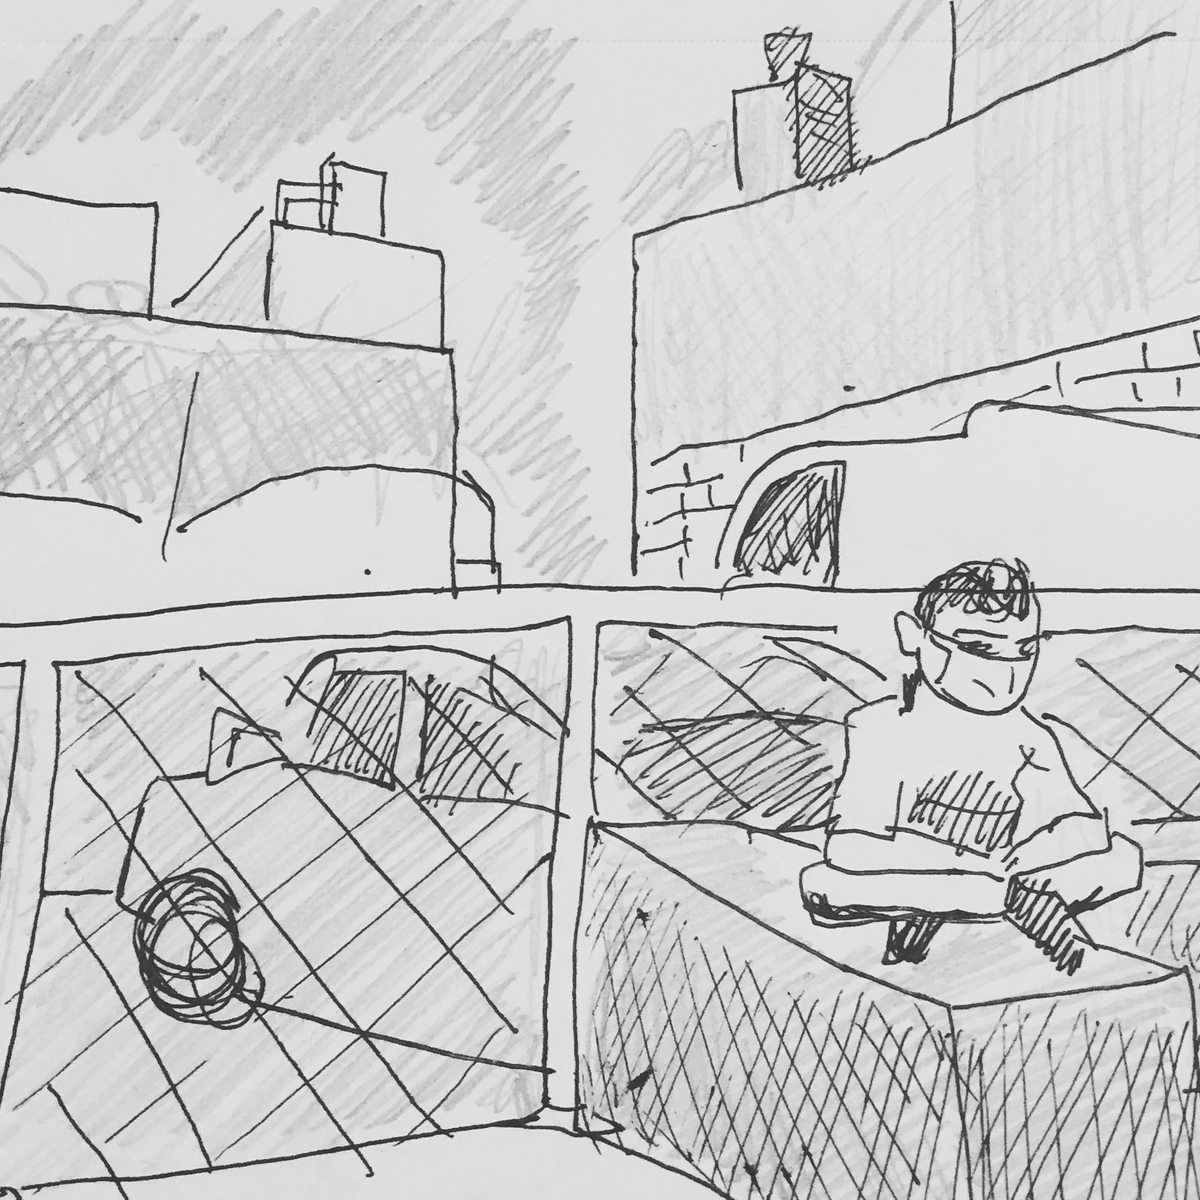 #NewYorkMinutes, Day 406. Took a break while on my morning walk. #rest #sit #rest #parkinglot #truck #car #street #queens #drawing #sketch #illustration @galacticrevolt  @JAIllustrations https://t.co/y2pdgiOR93